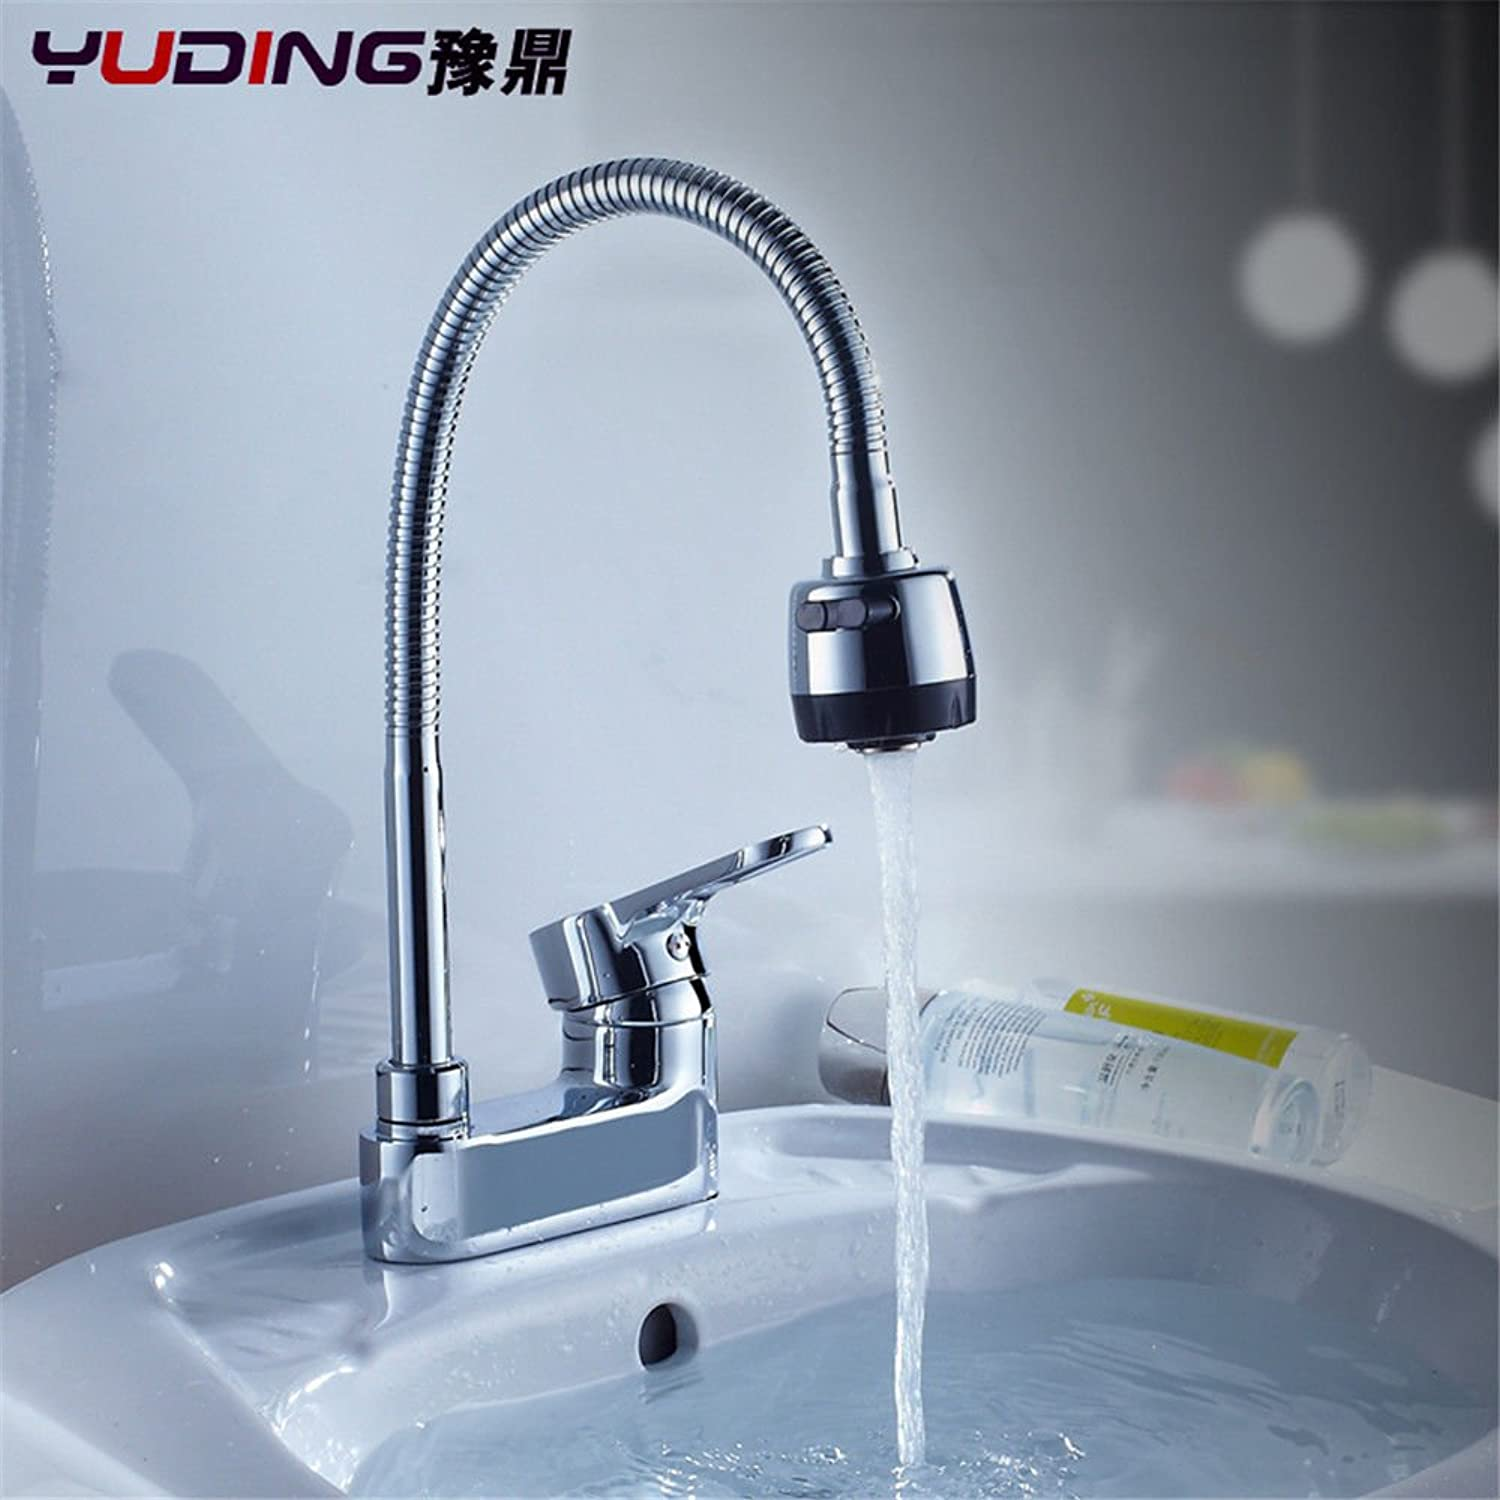 ETERNAL QUALITY Bathroom Sink Basin Tap Brass Mixer Tap Washroom Mixer Faucet The copper 2-hole basin mixer to turn the cold water faucet basin basin mixer two holes 3 ho